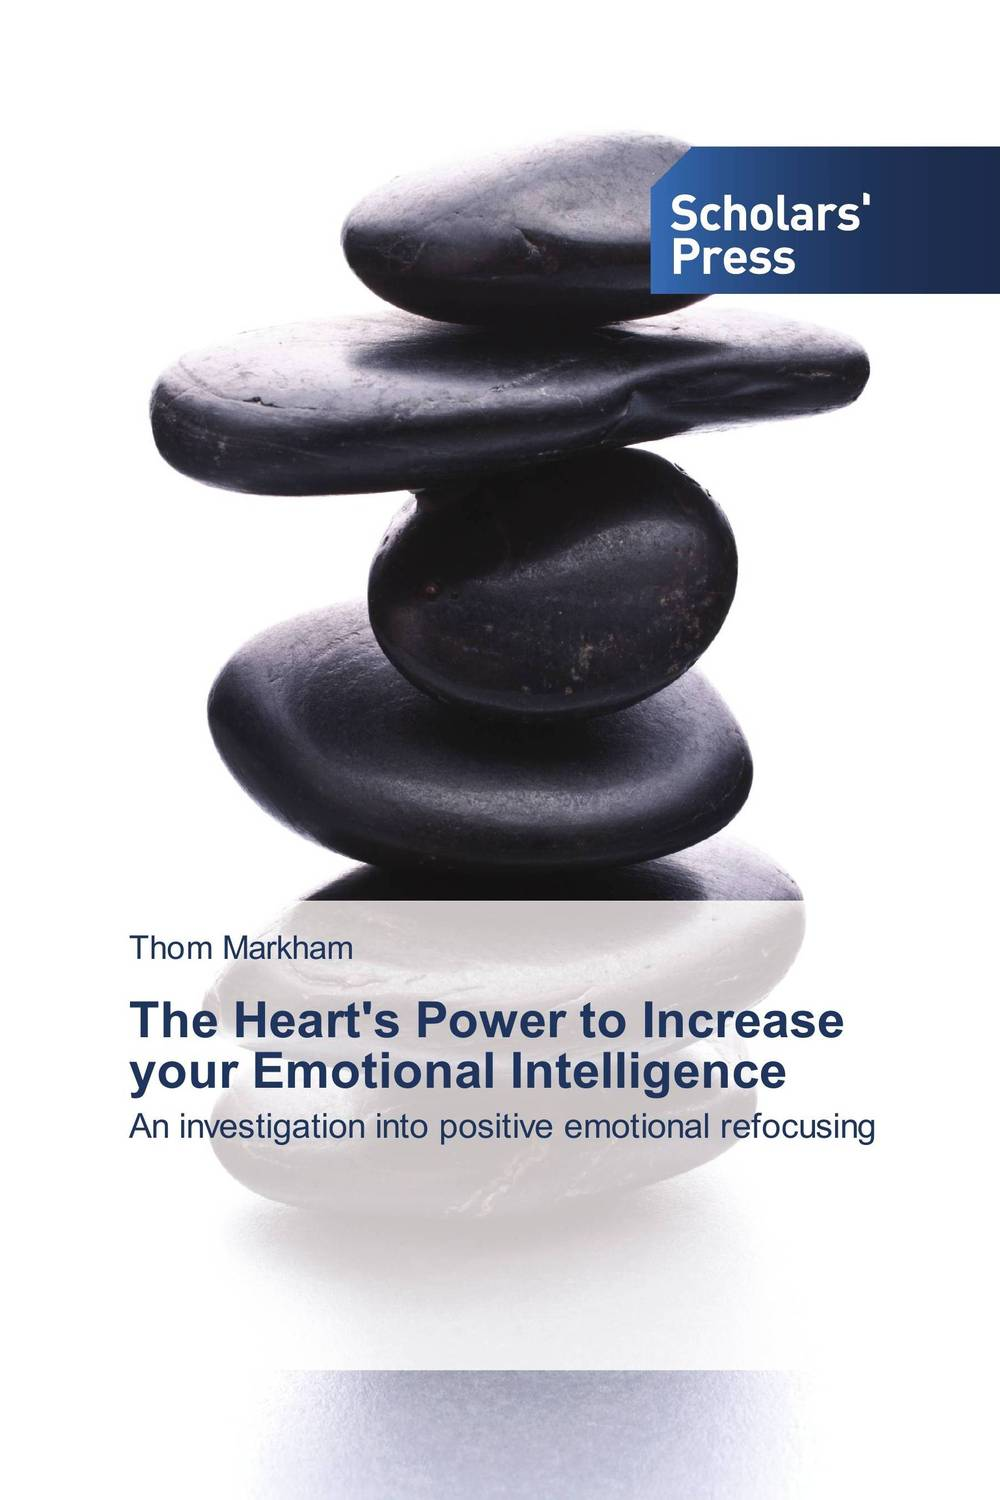 The Heart's Power to Increase your Emotional Intelligence diana giddon unequaled tips for building a successful career through emotional intelligence